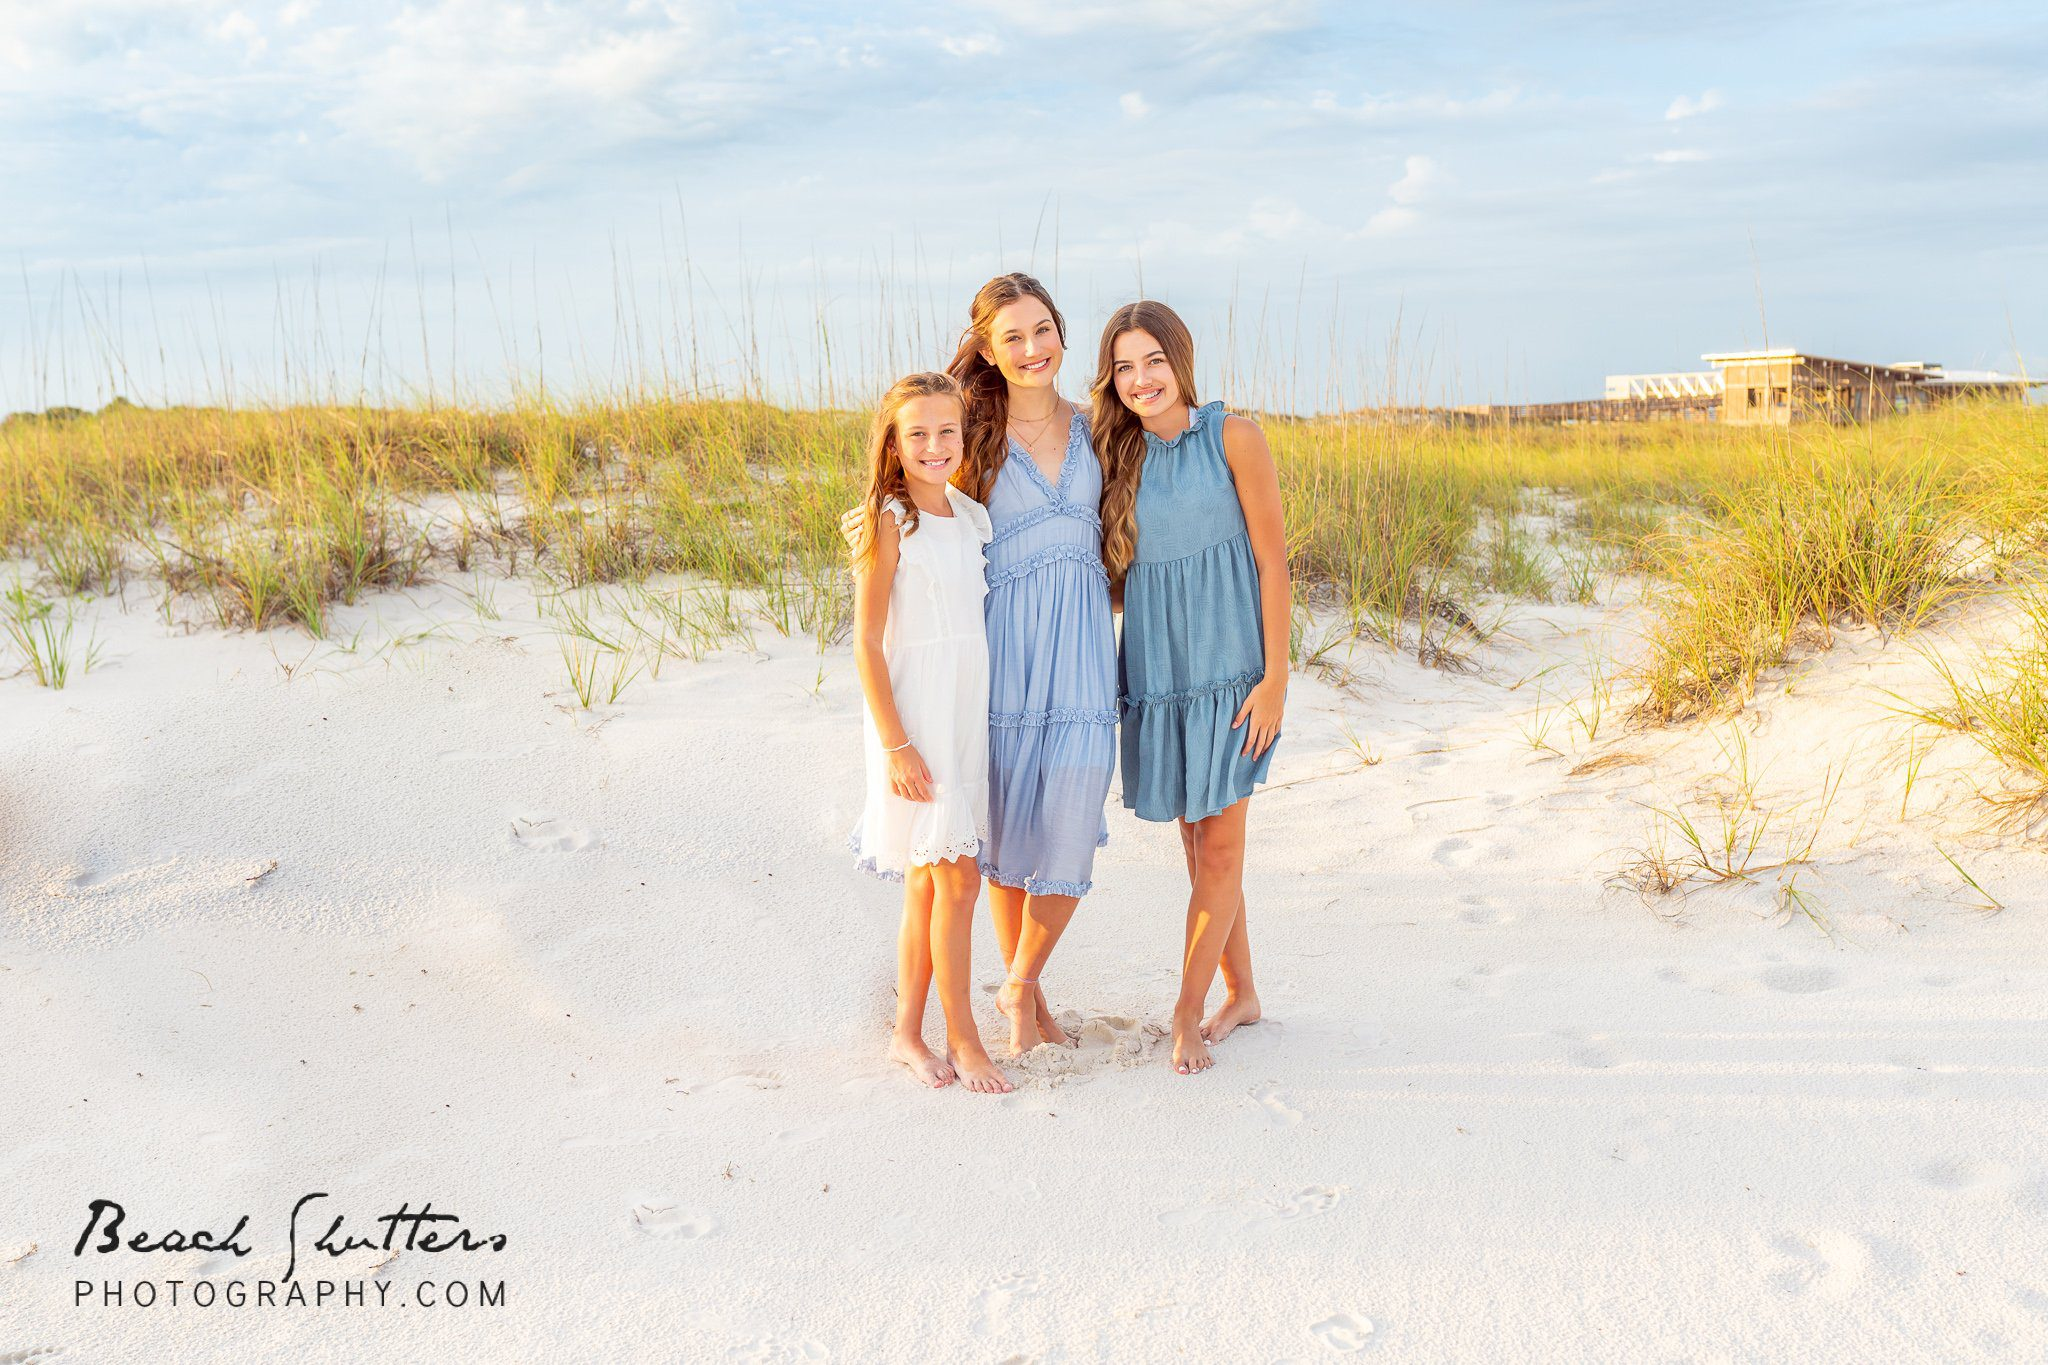 Gulf Shores photography with teens